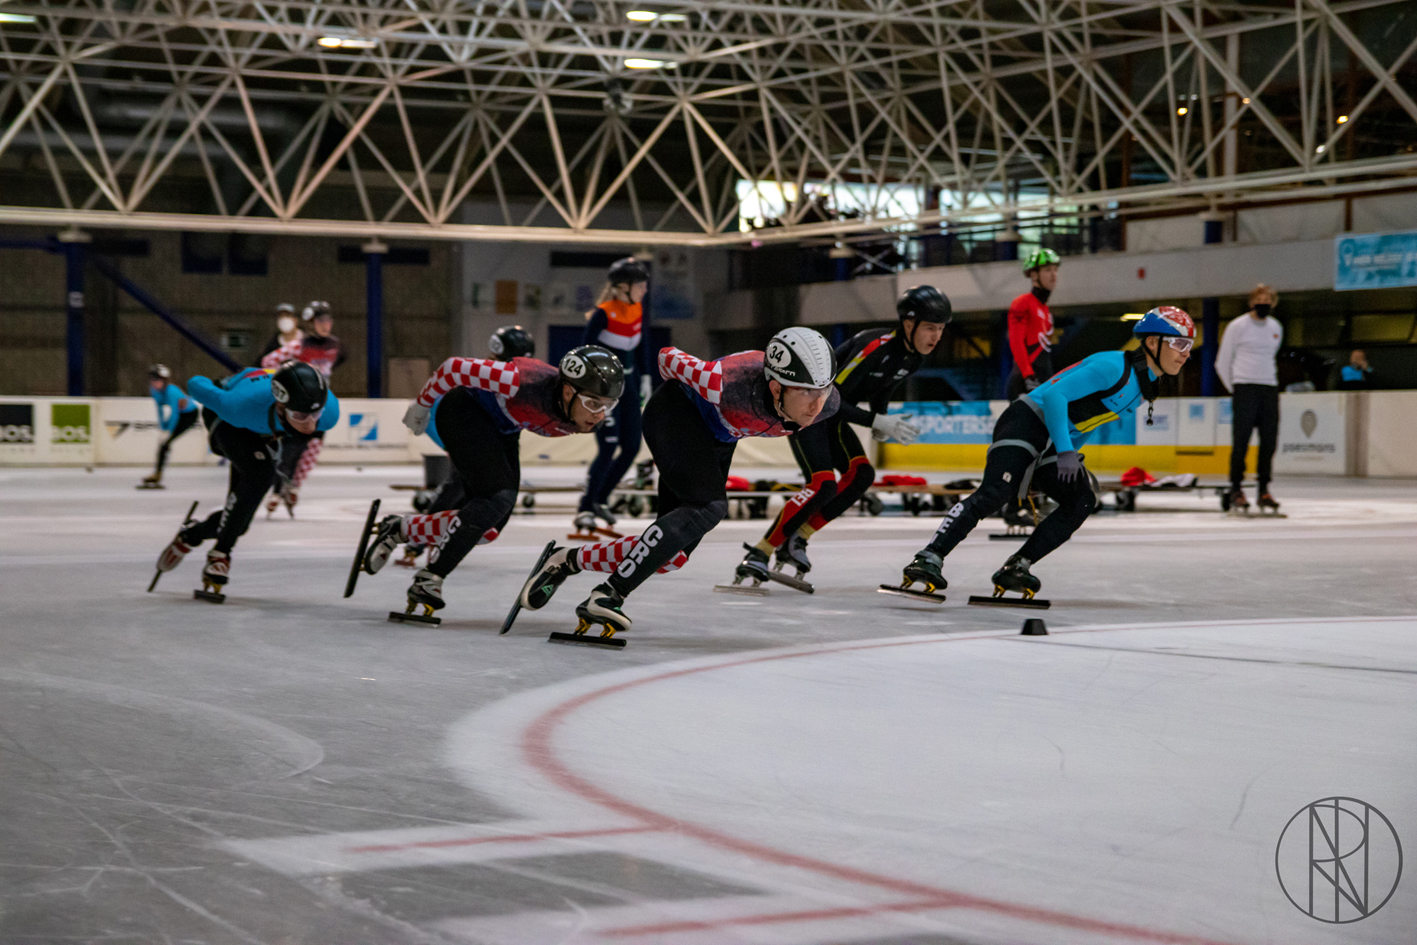 Croatian speed skating team ready for the European Championships